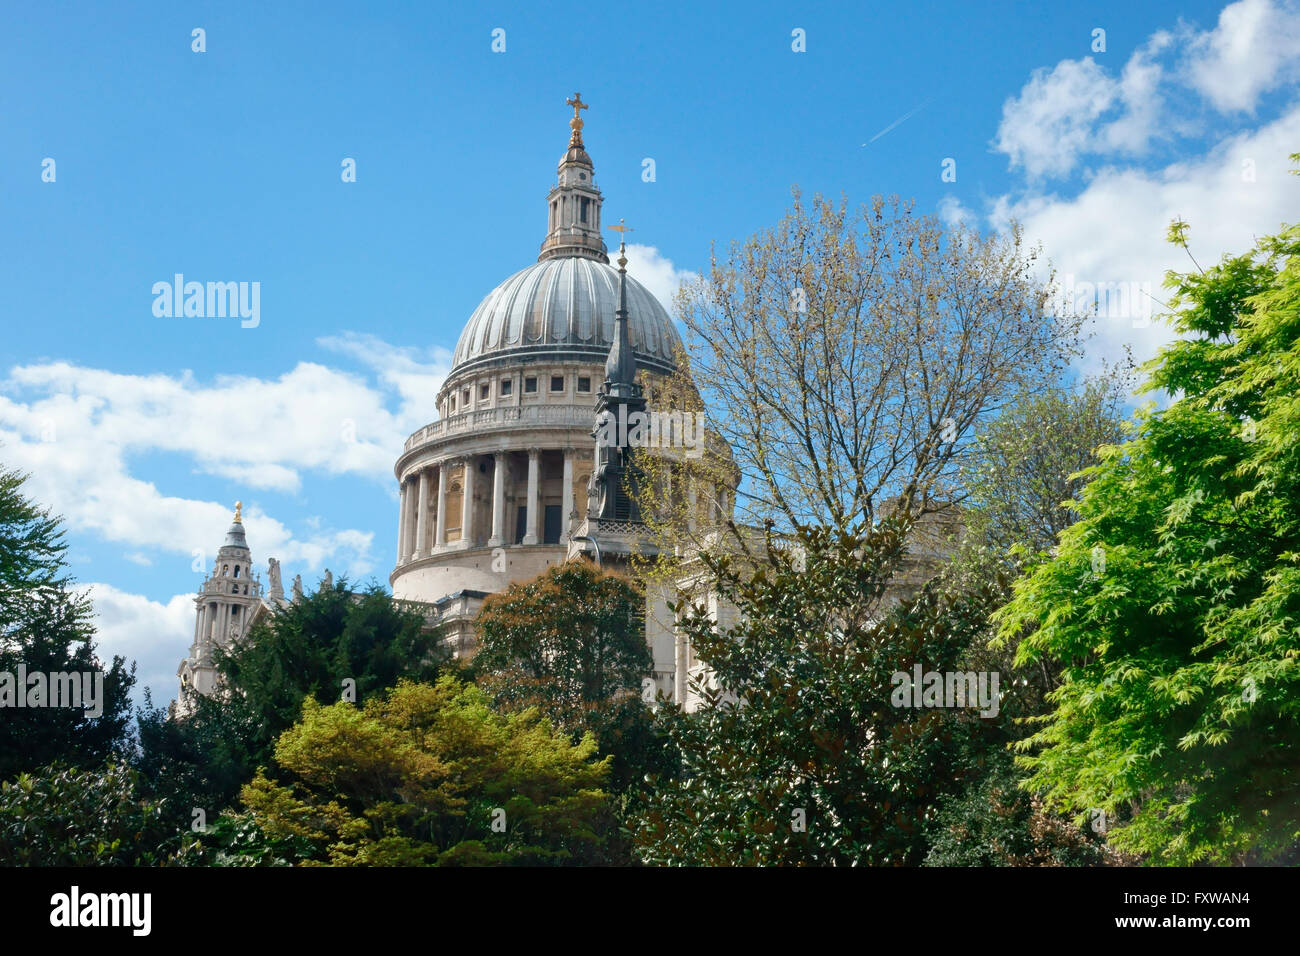 St. Pauls Cathedral, in der City of London, England, Großbritannien, Deutschland, GB, UK Stockbild